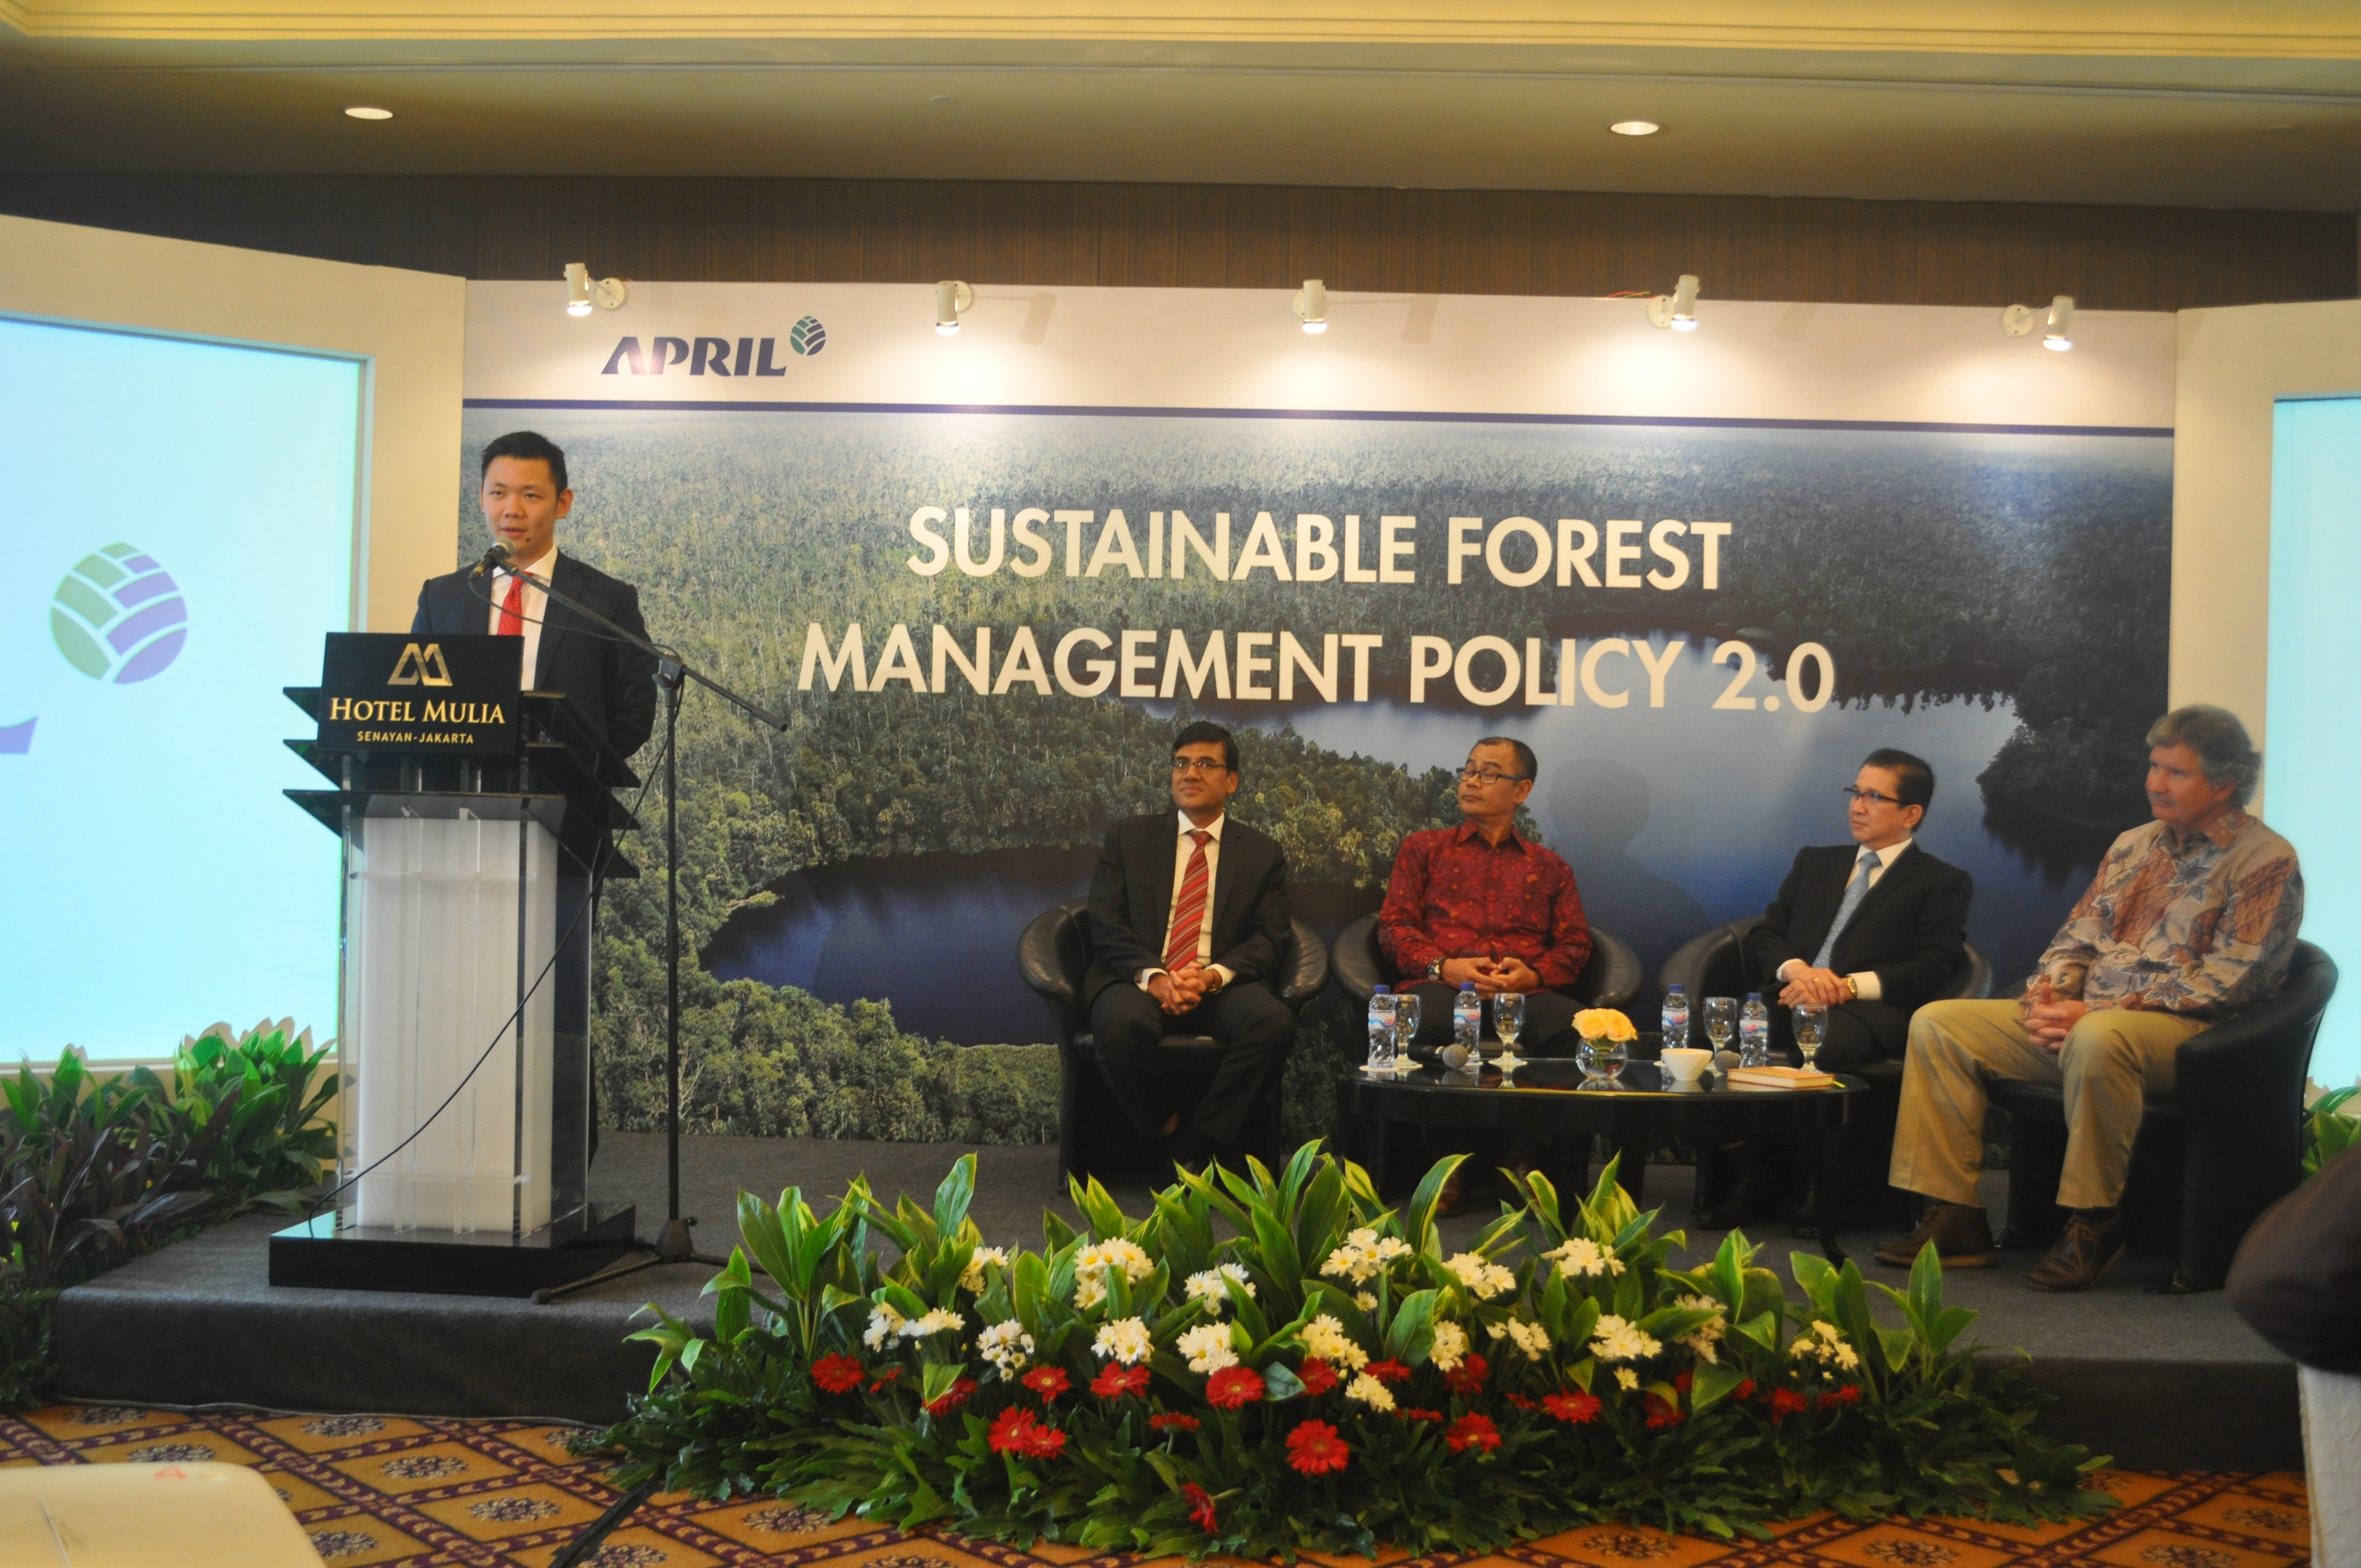 Anderson Tanoto speaks at the SFMP 2.0 event